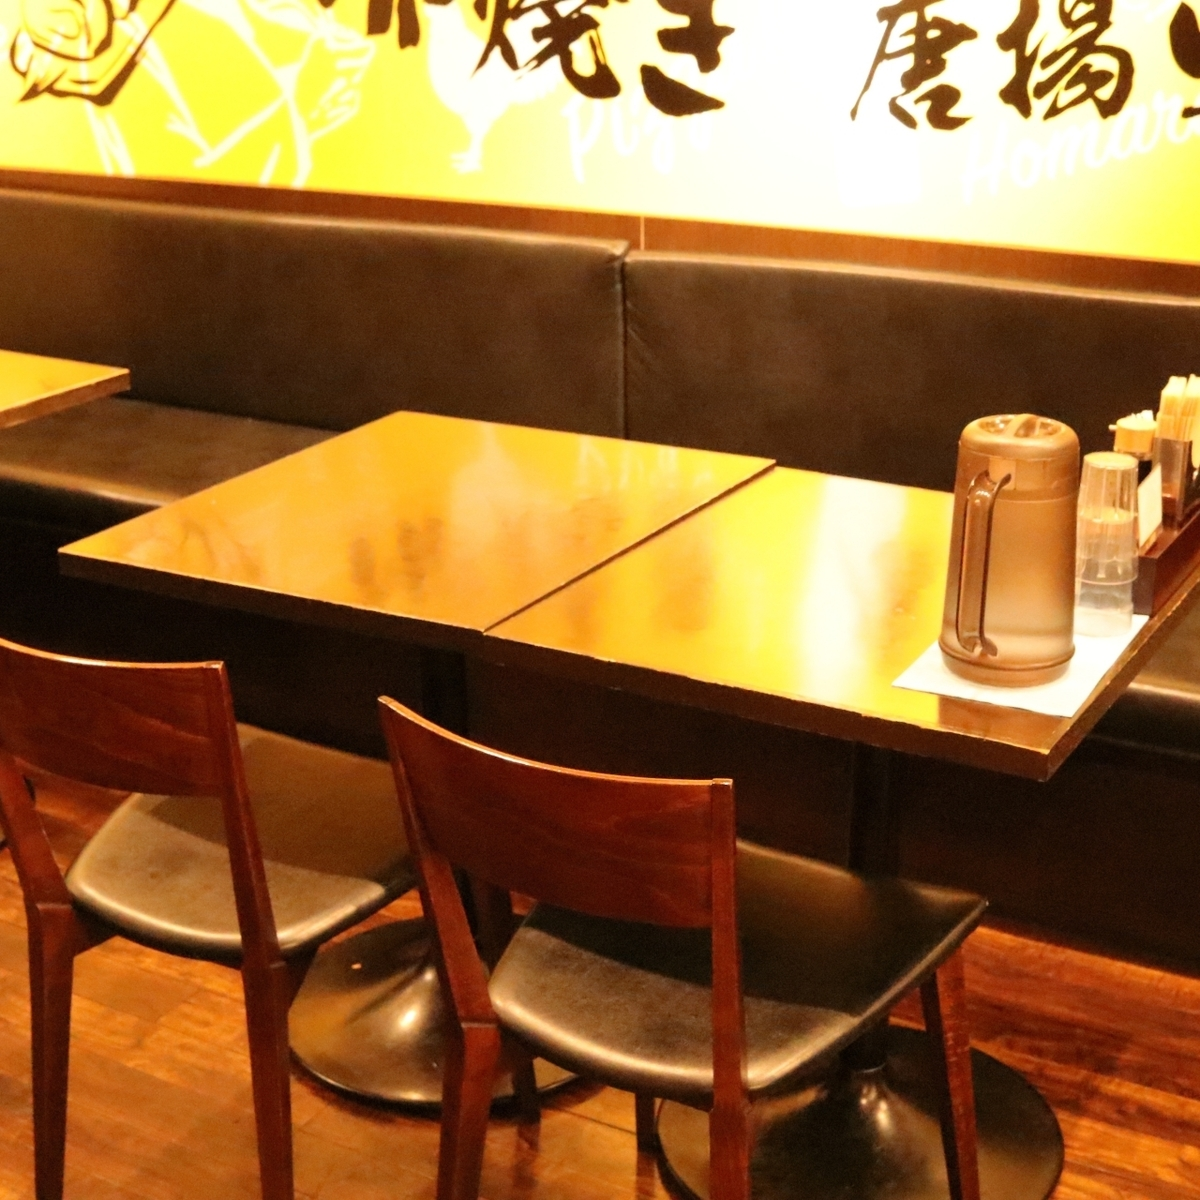 We have 6 tables for 4 people! Layout freely for movable seats ♪ Even for family use of meals ◎